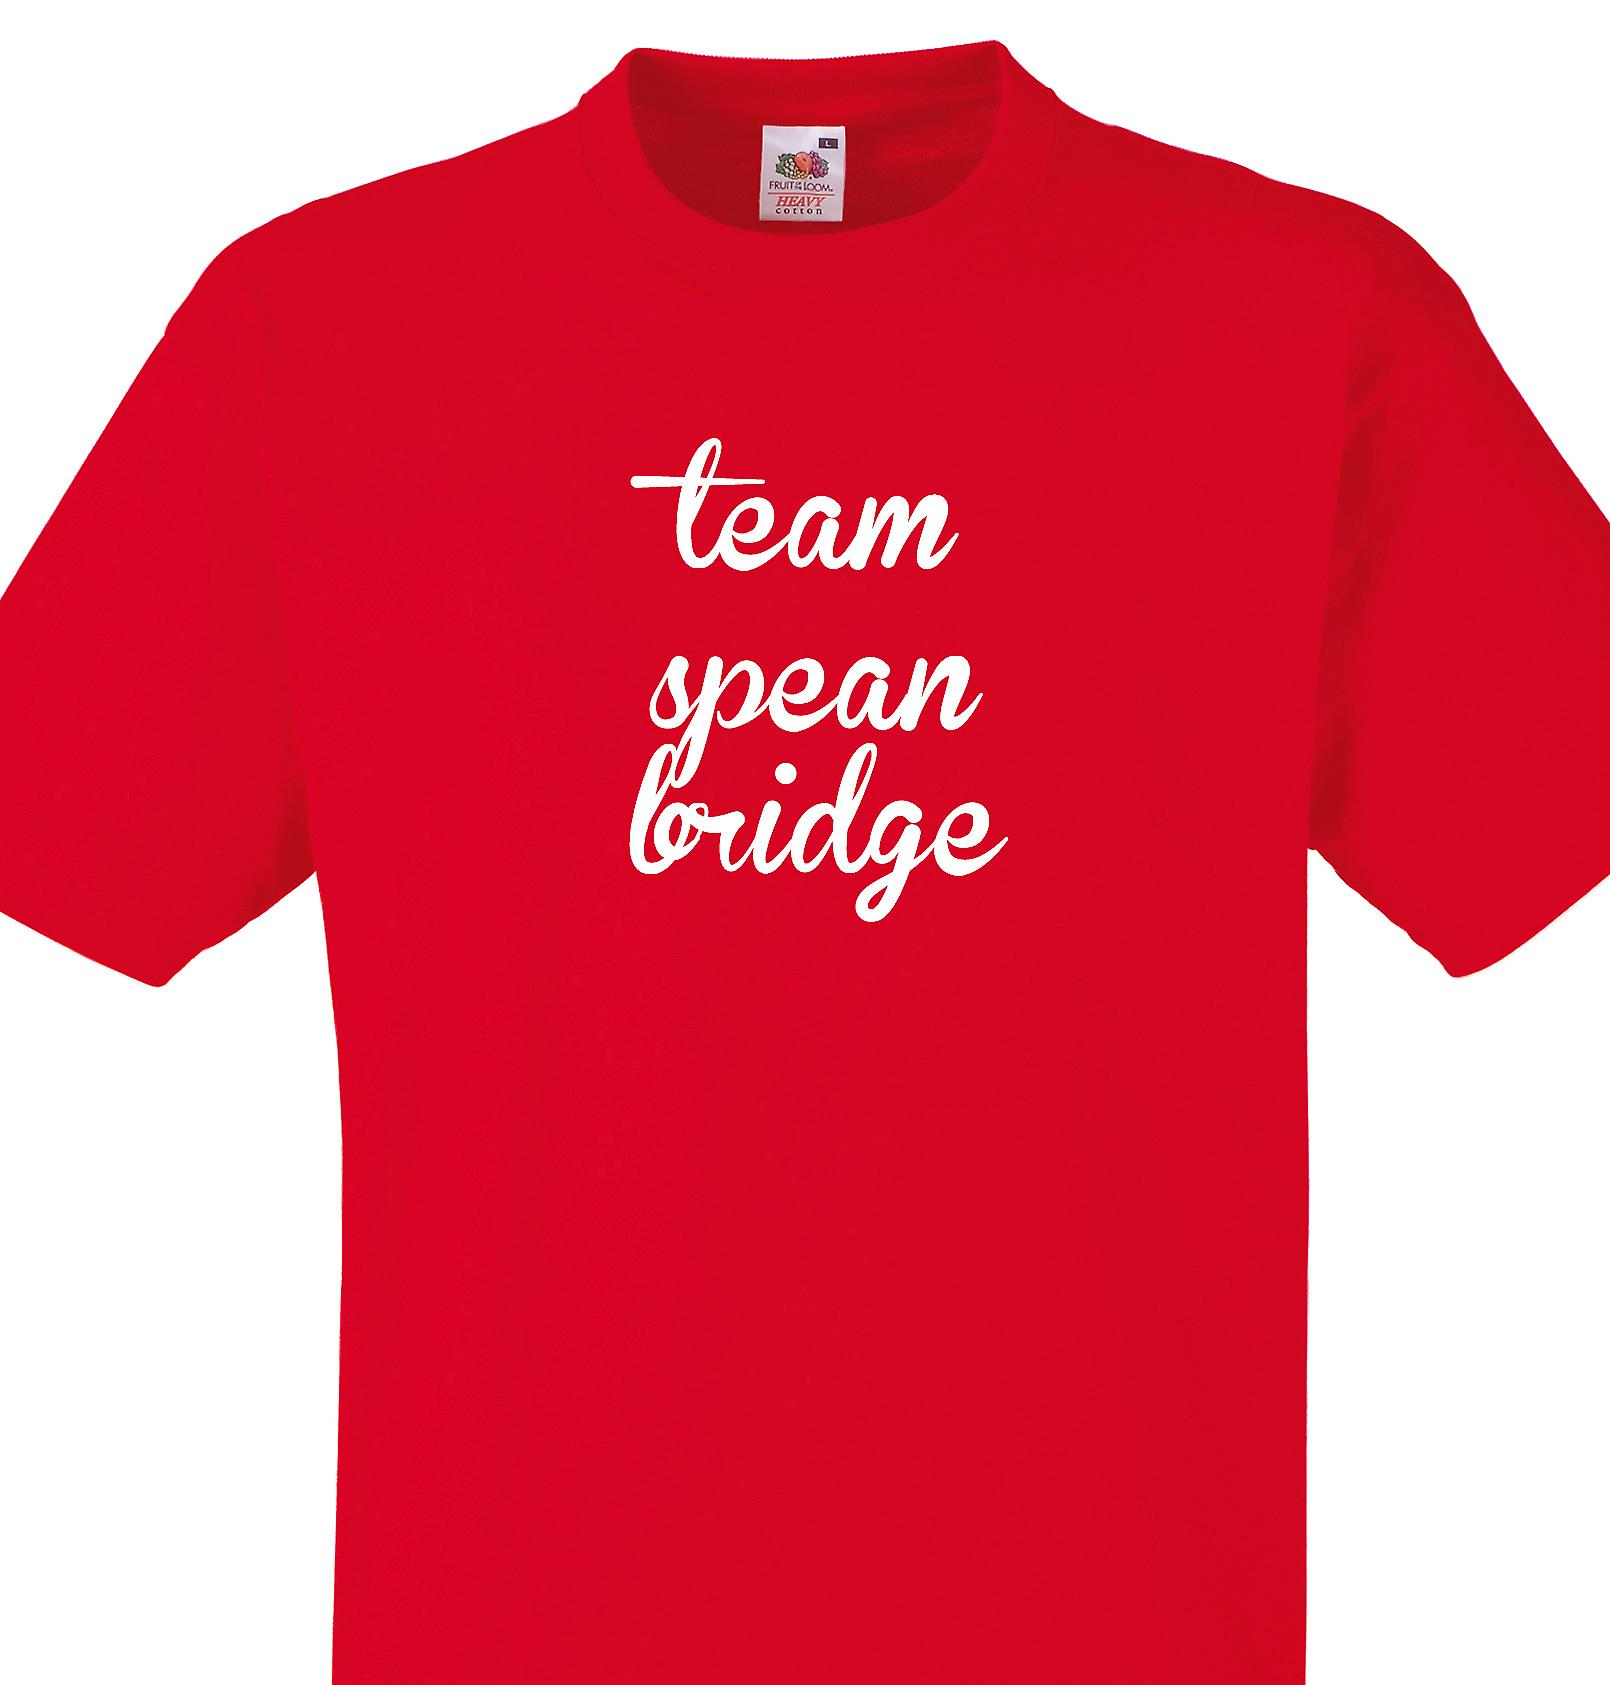 Team Spean bridge Red T shirt